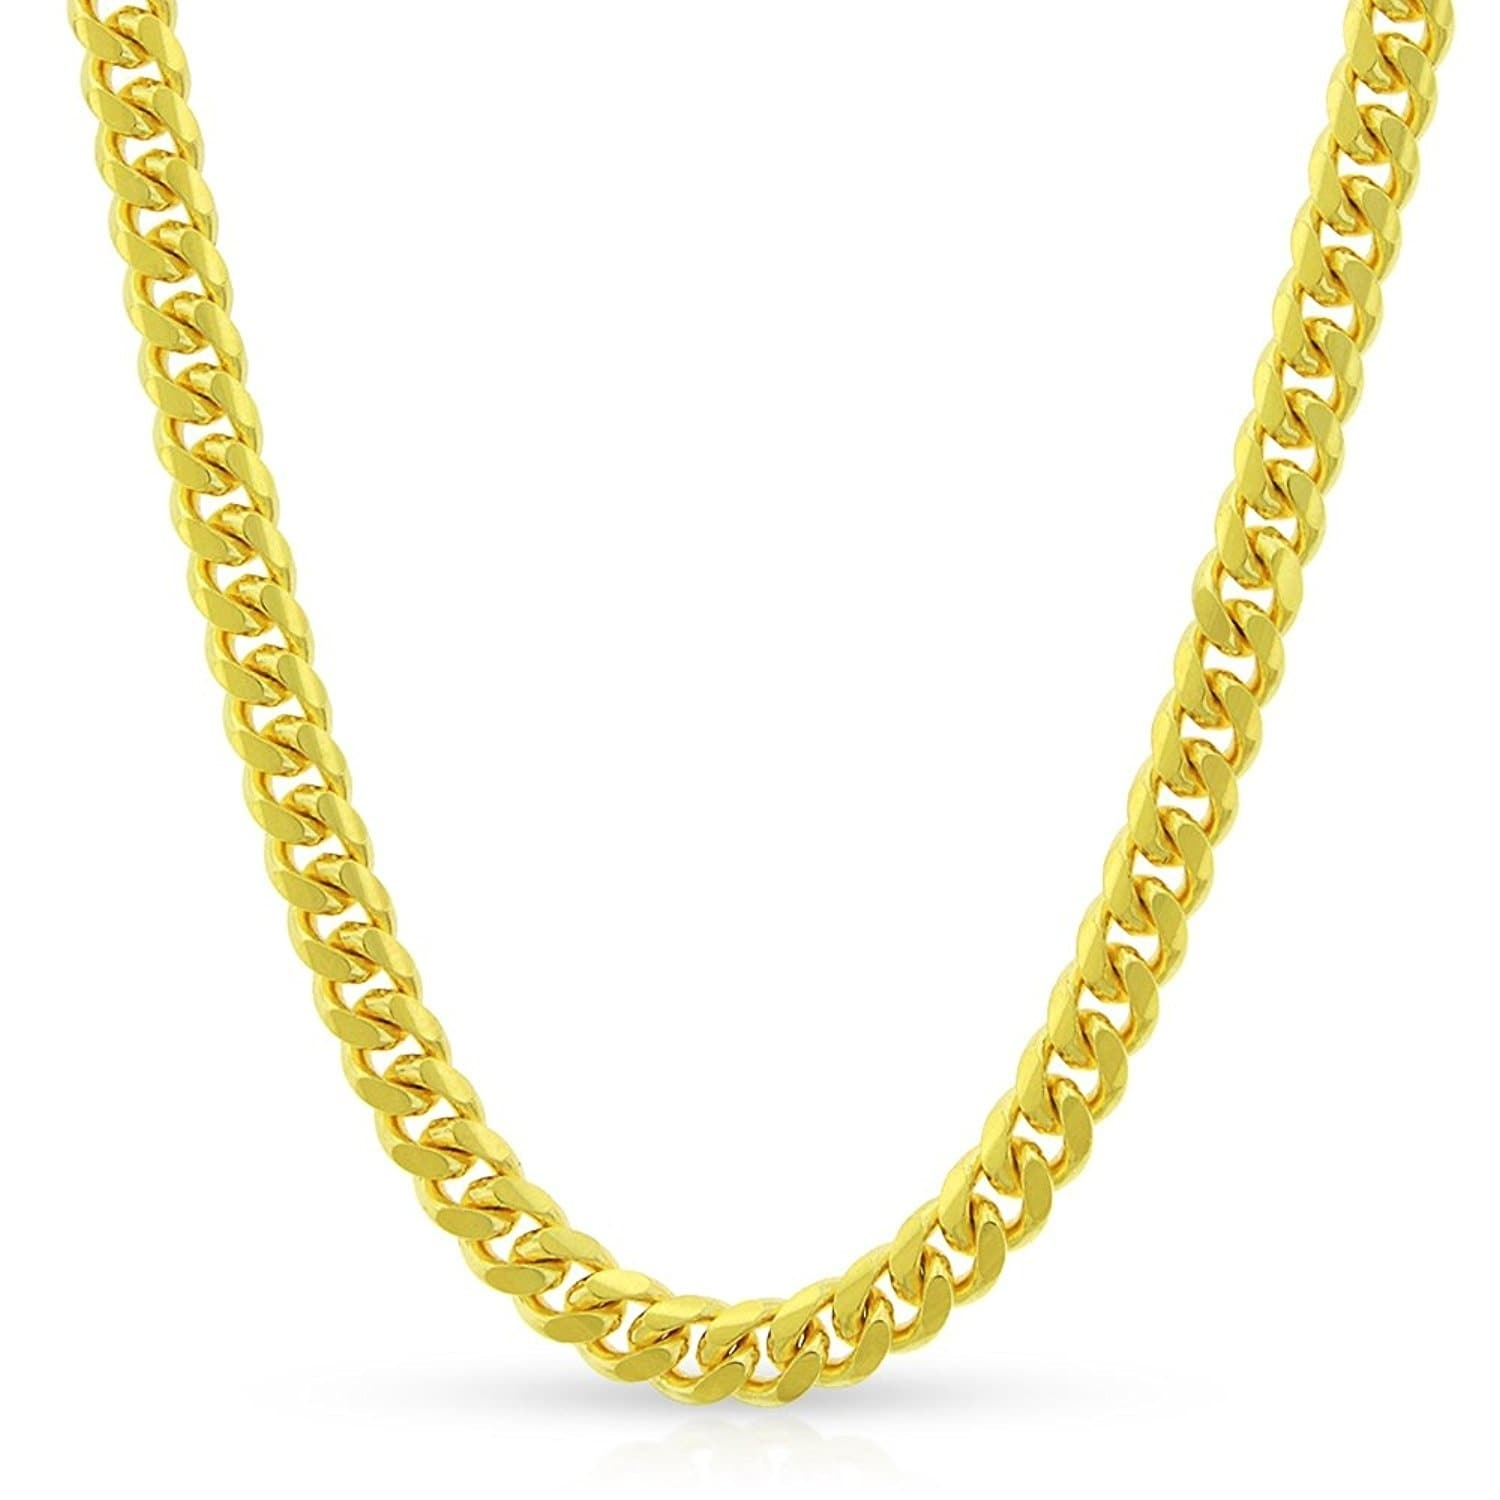 Solid Italy .925 Sterling Silver 2.8mm Figaro Pave Link Italian Chain Necklace